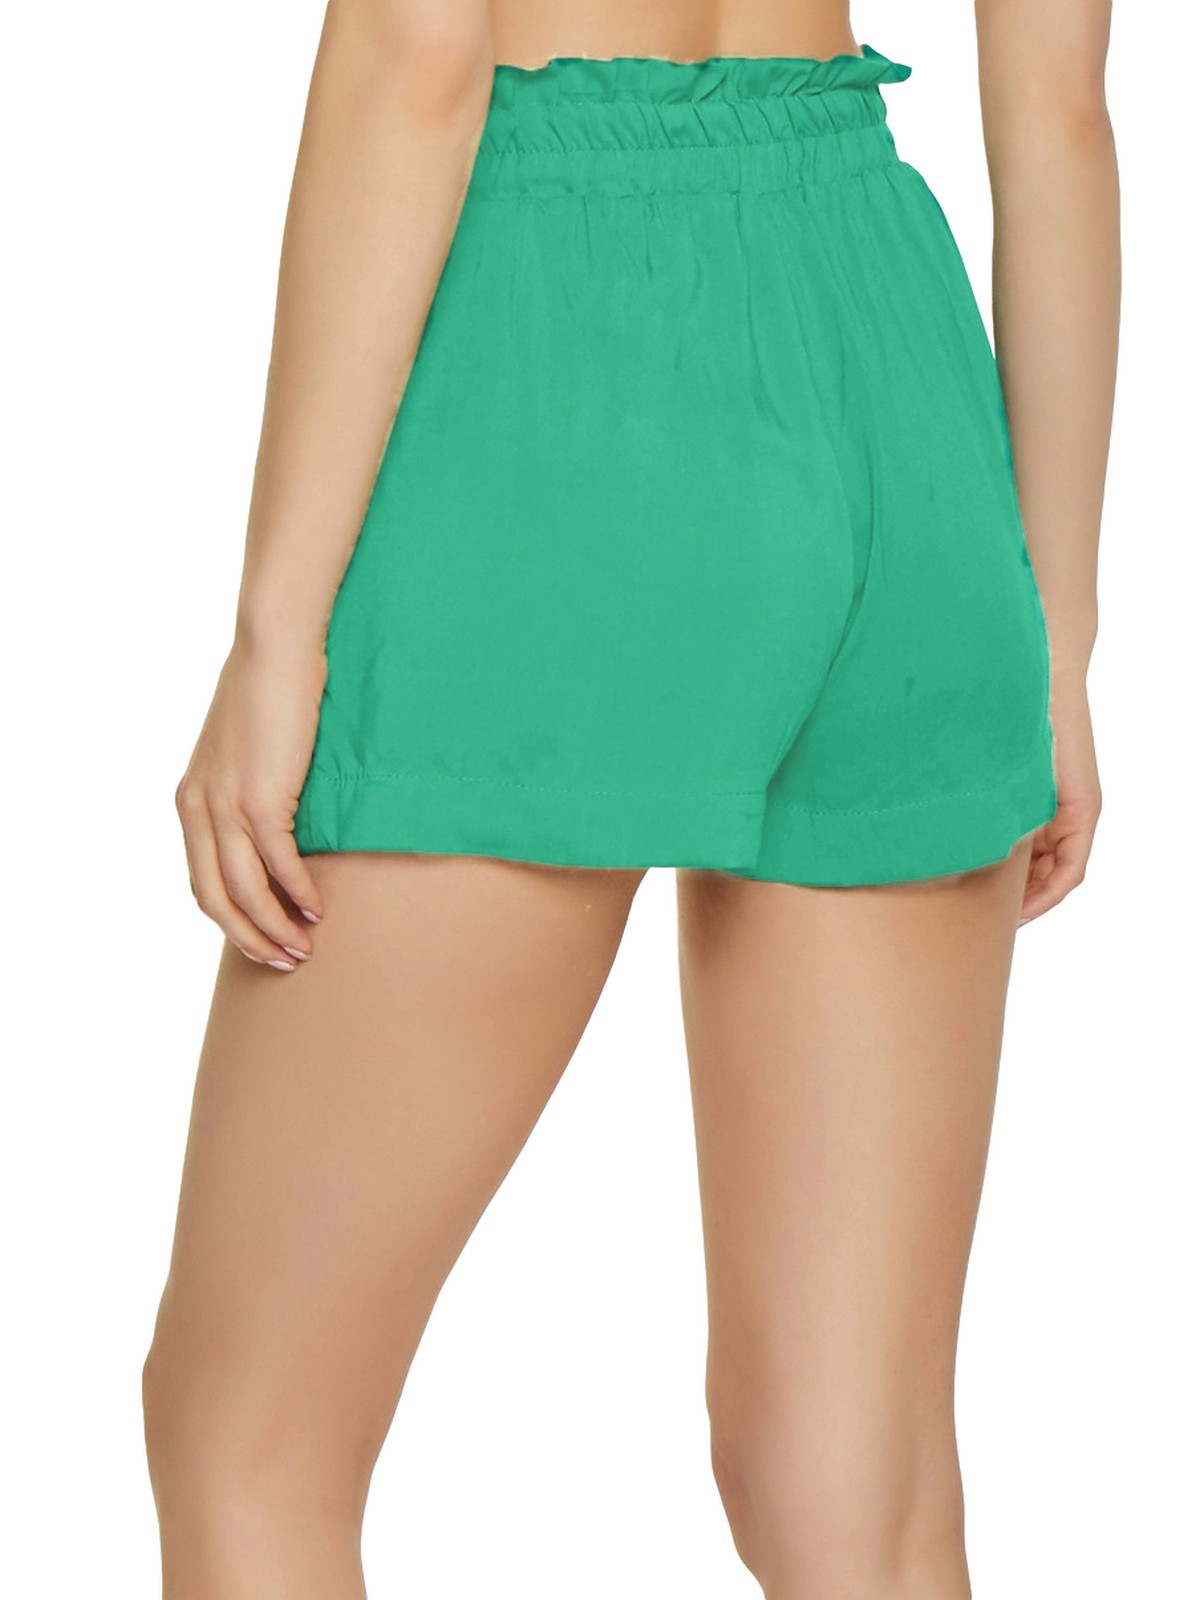 Paperbag Waist Shorts in Teal Green